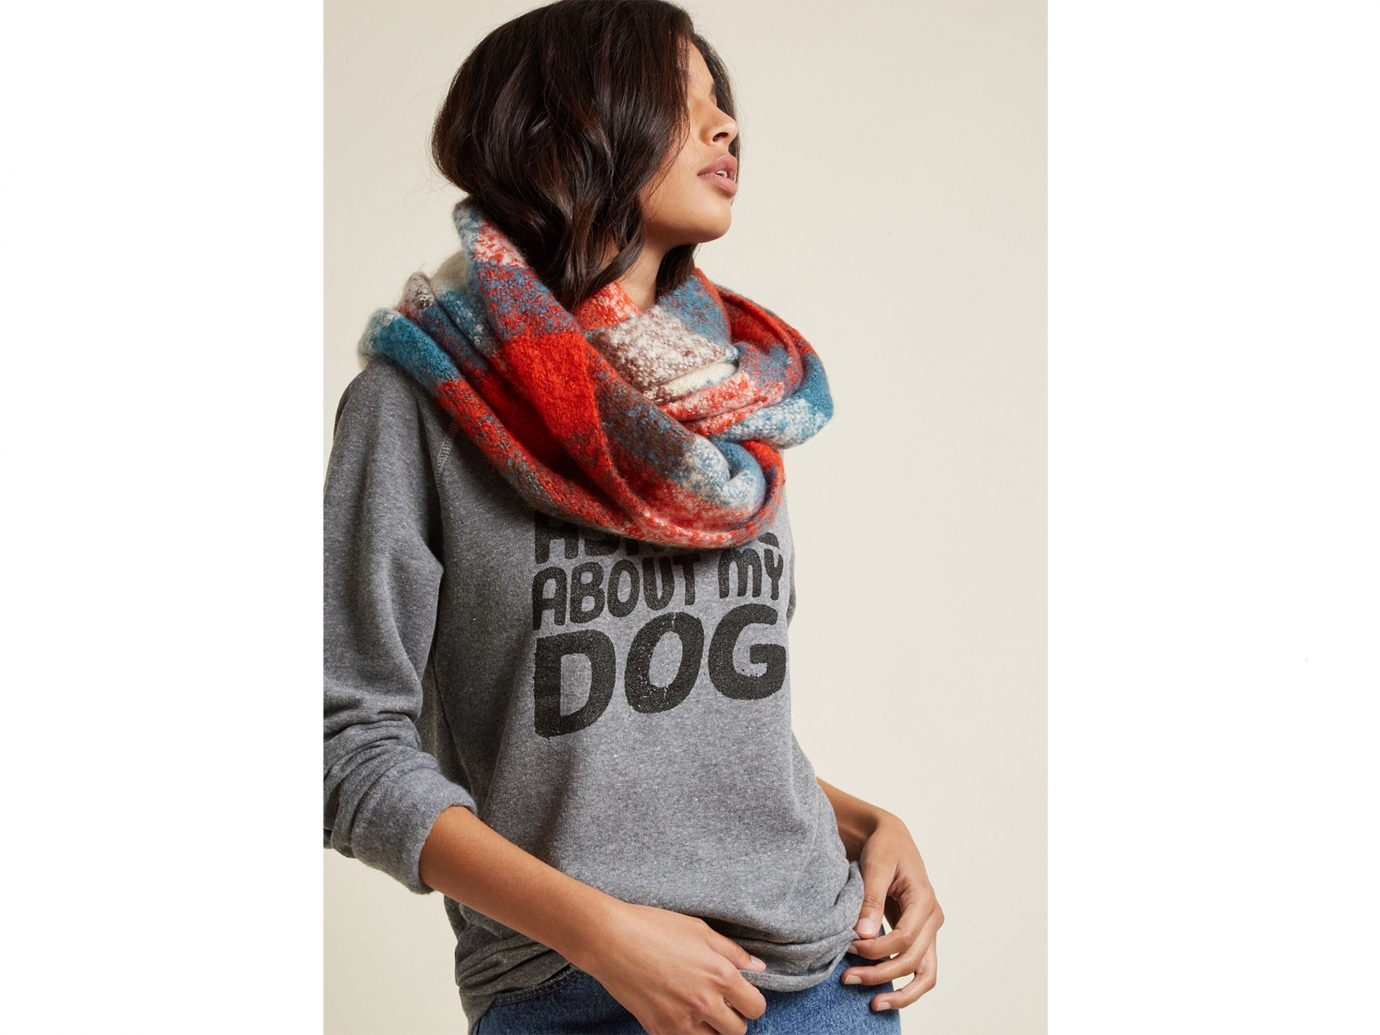 Travel Shop person clothing scarf stole neck woolen pattern